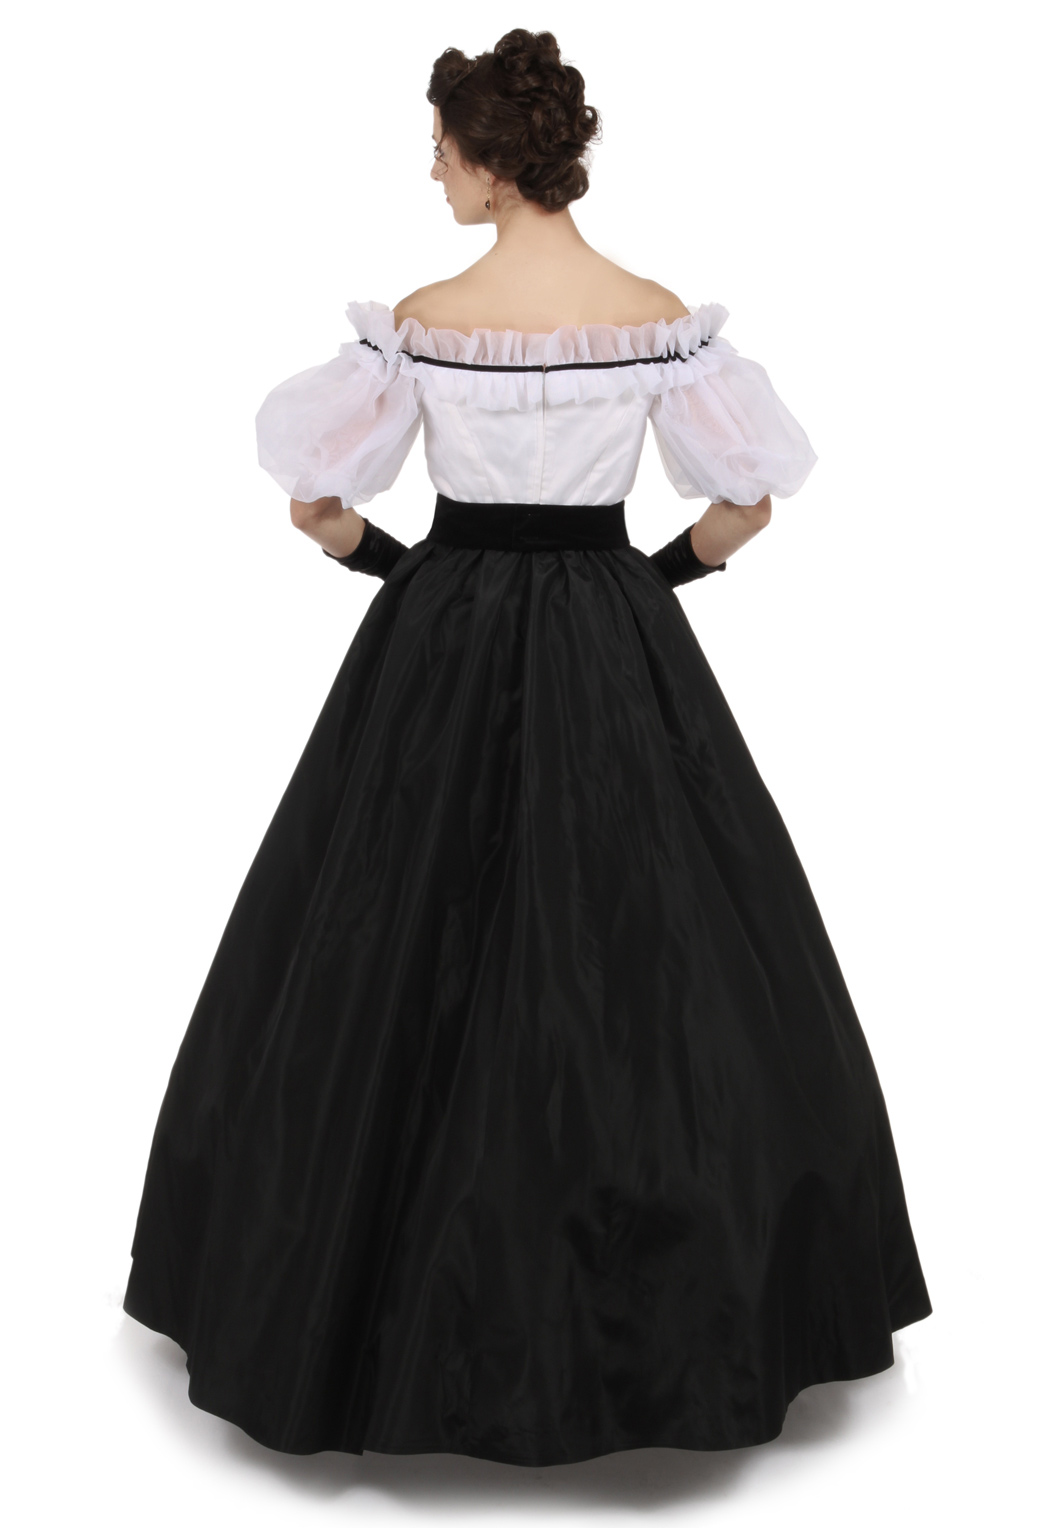 Jasmine Civil War Ball Gown | Recollections